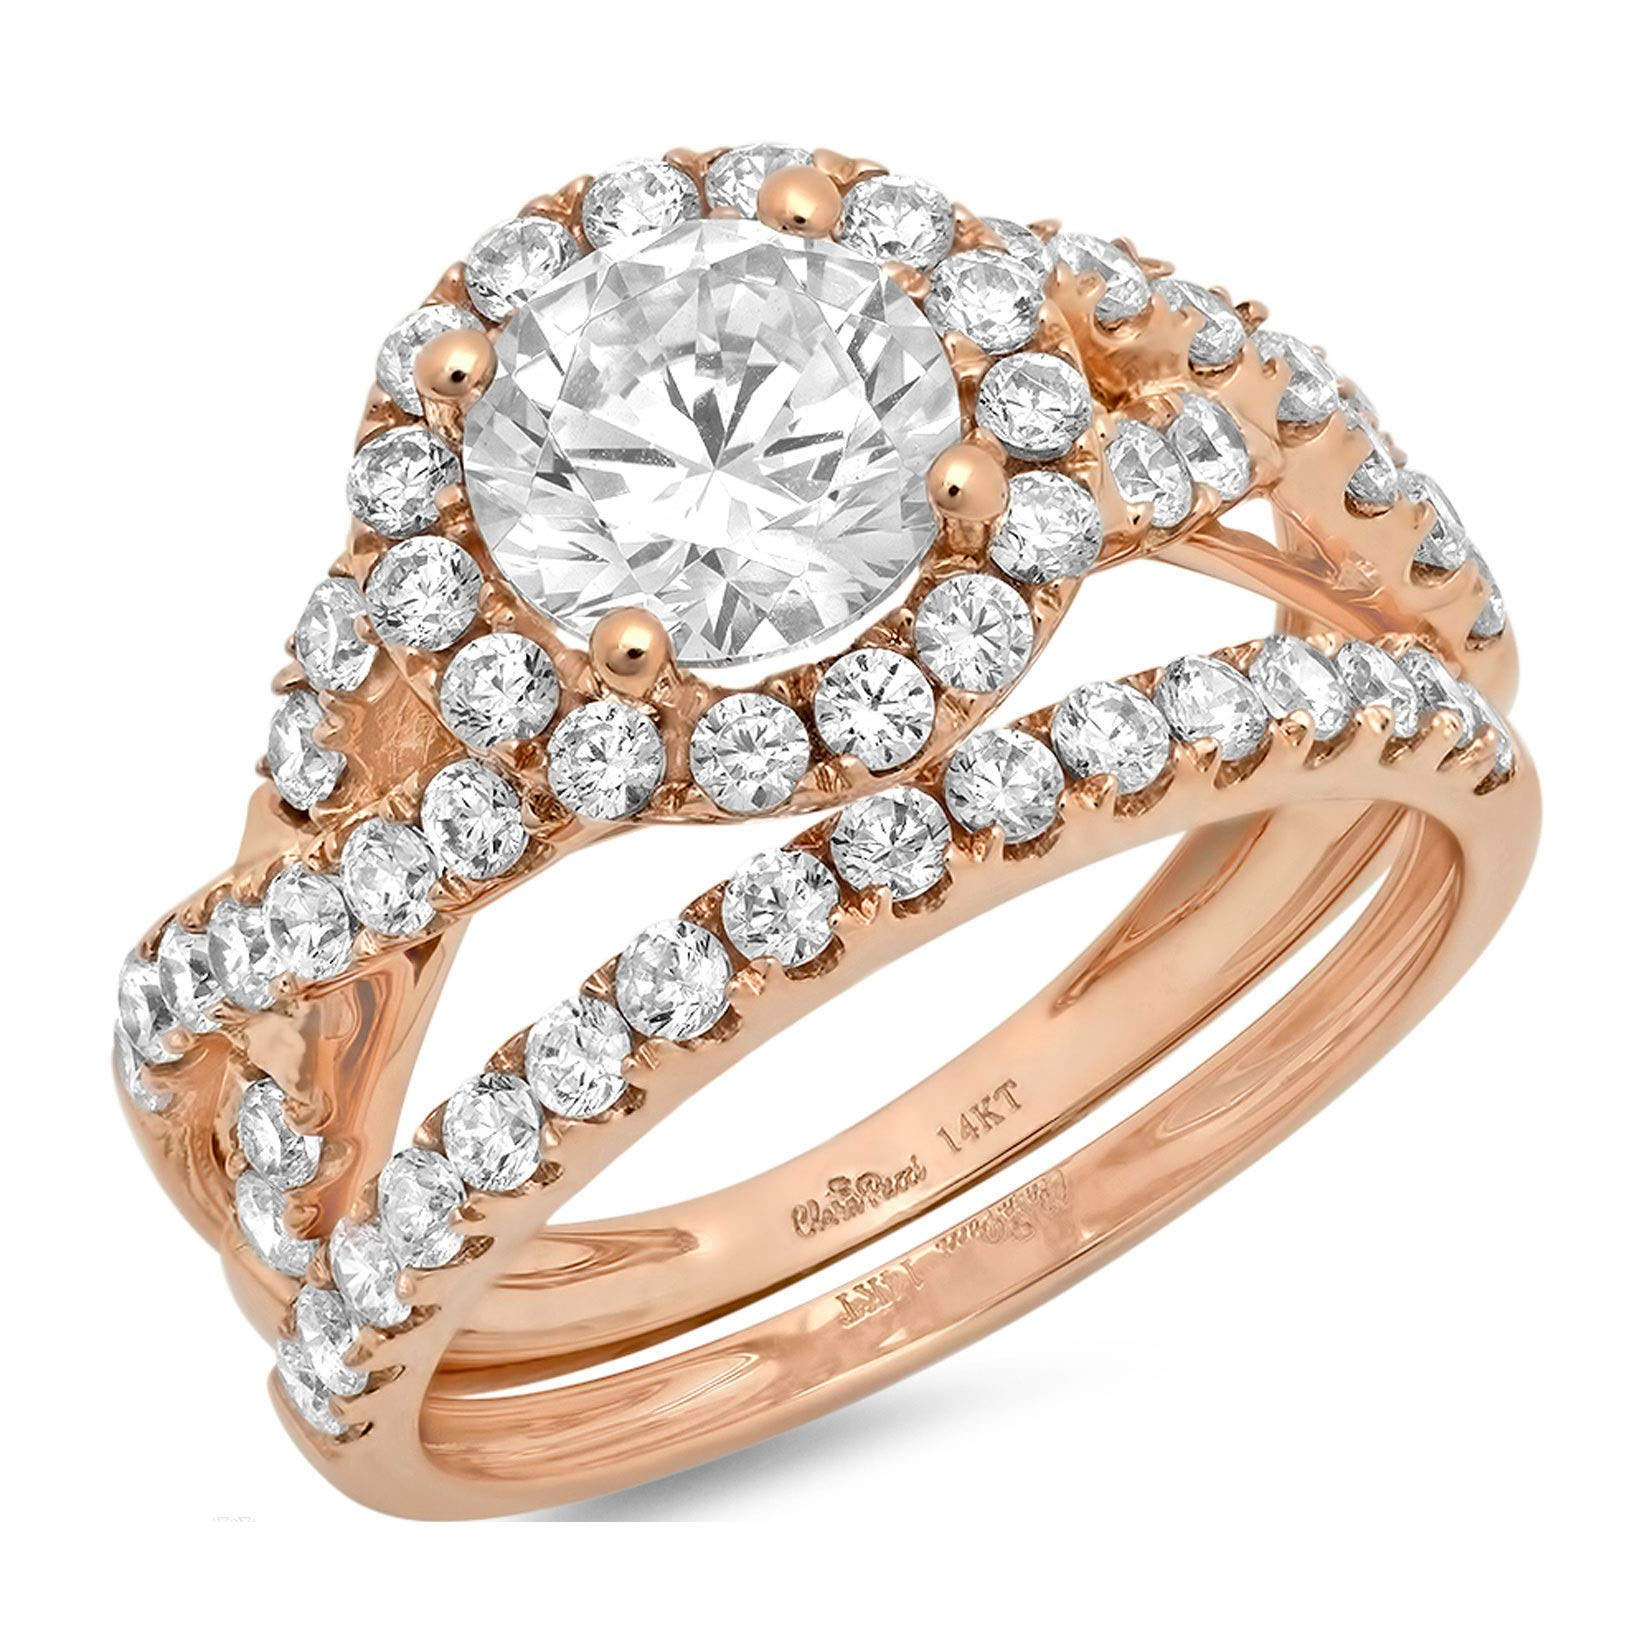 2.34ct Round Cut Halo Split Shank Solitaire with Accent VVS1 Ideal D Moissanite & Simulated Diamond Engagement Promise Designer Anniversary Wedding Bridal ring band set 14k Rose Gold Sz 4.5